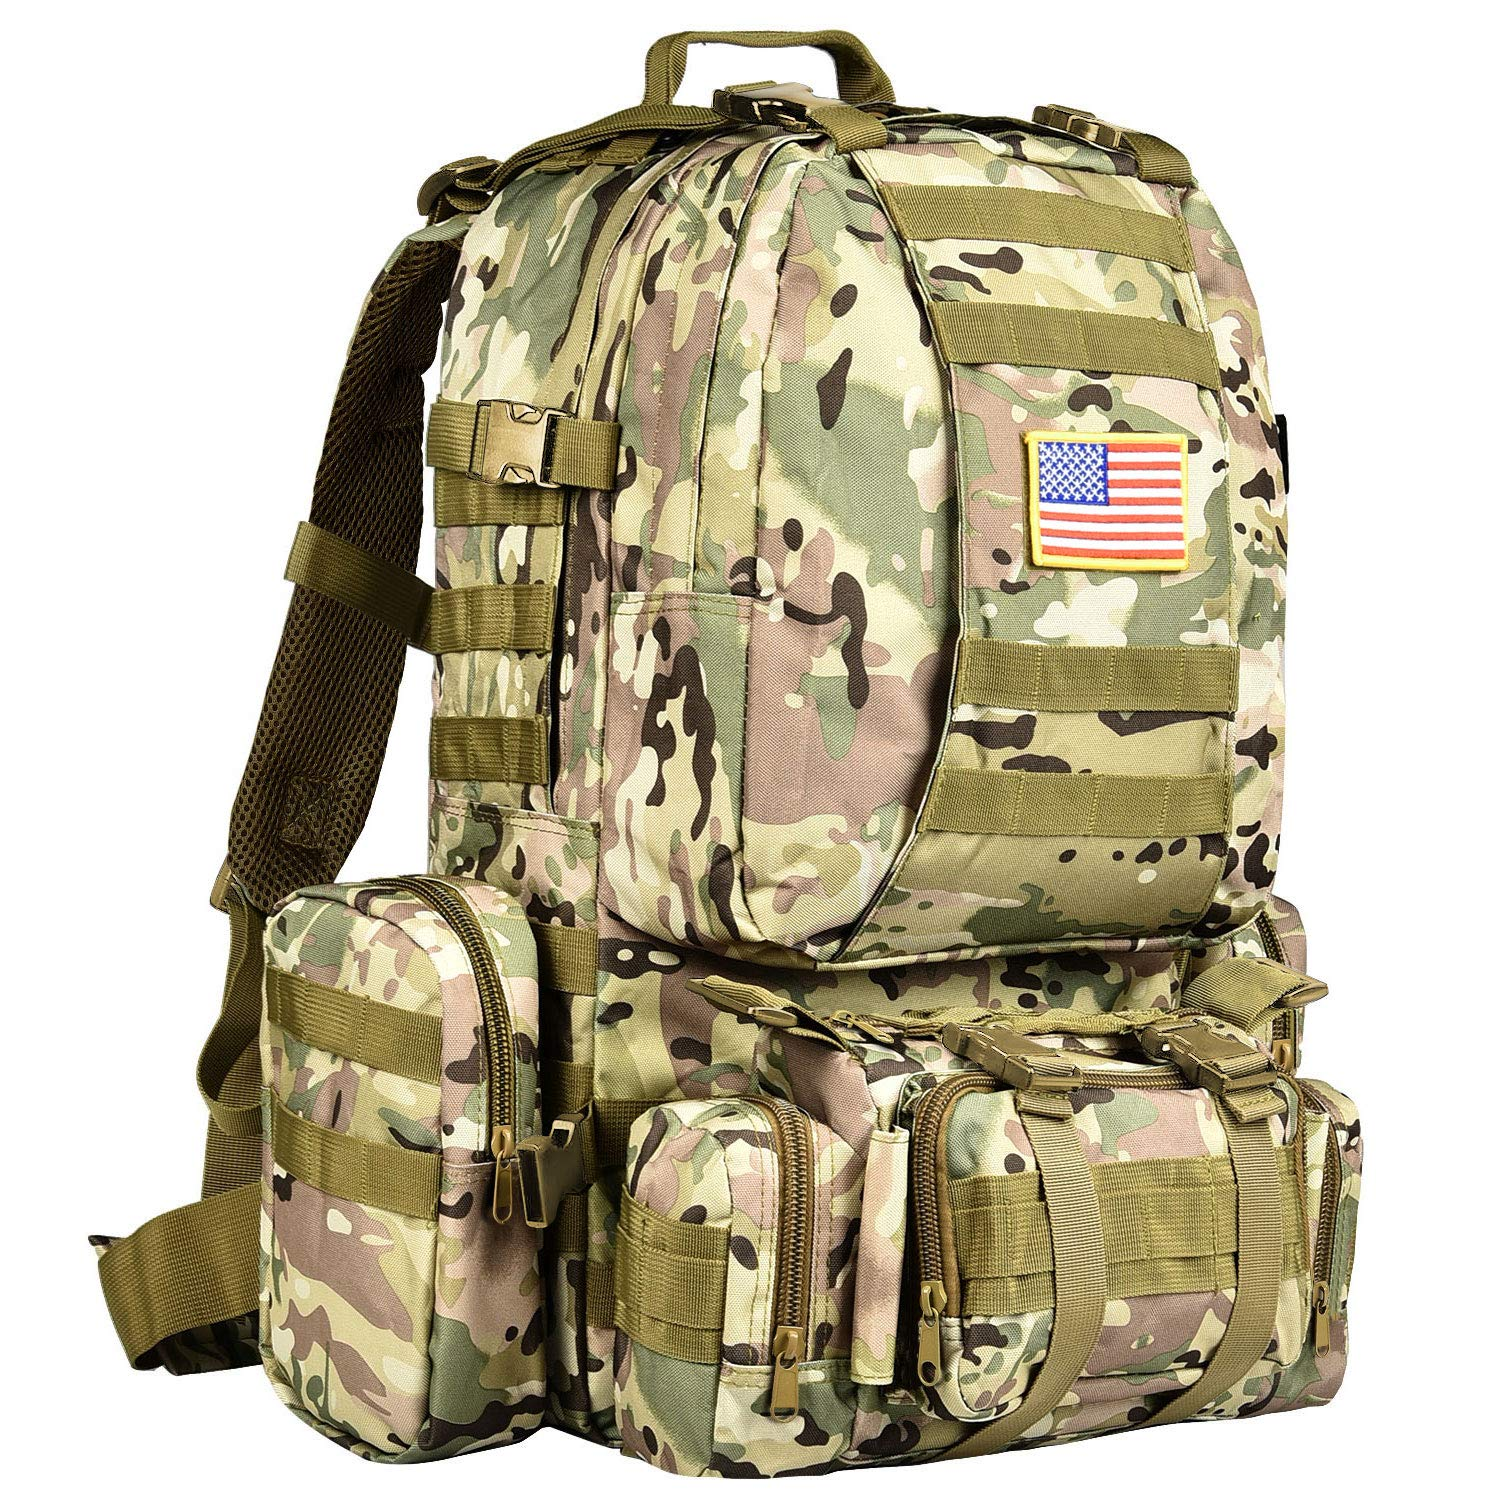 Best Hunting Backpack - New 2021 Guide 5